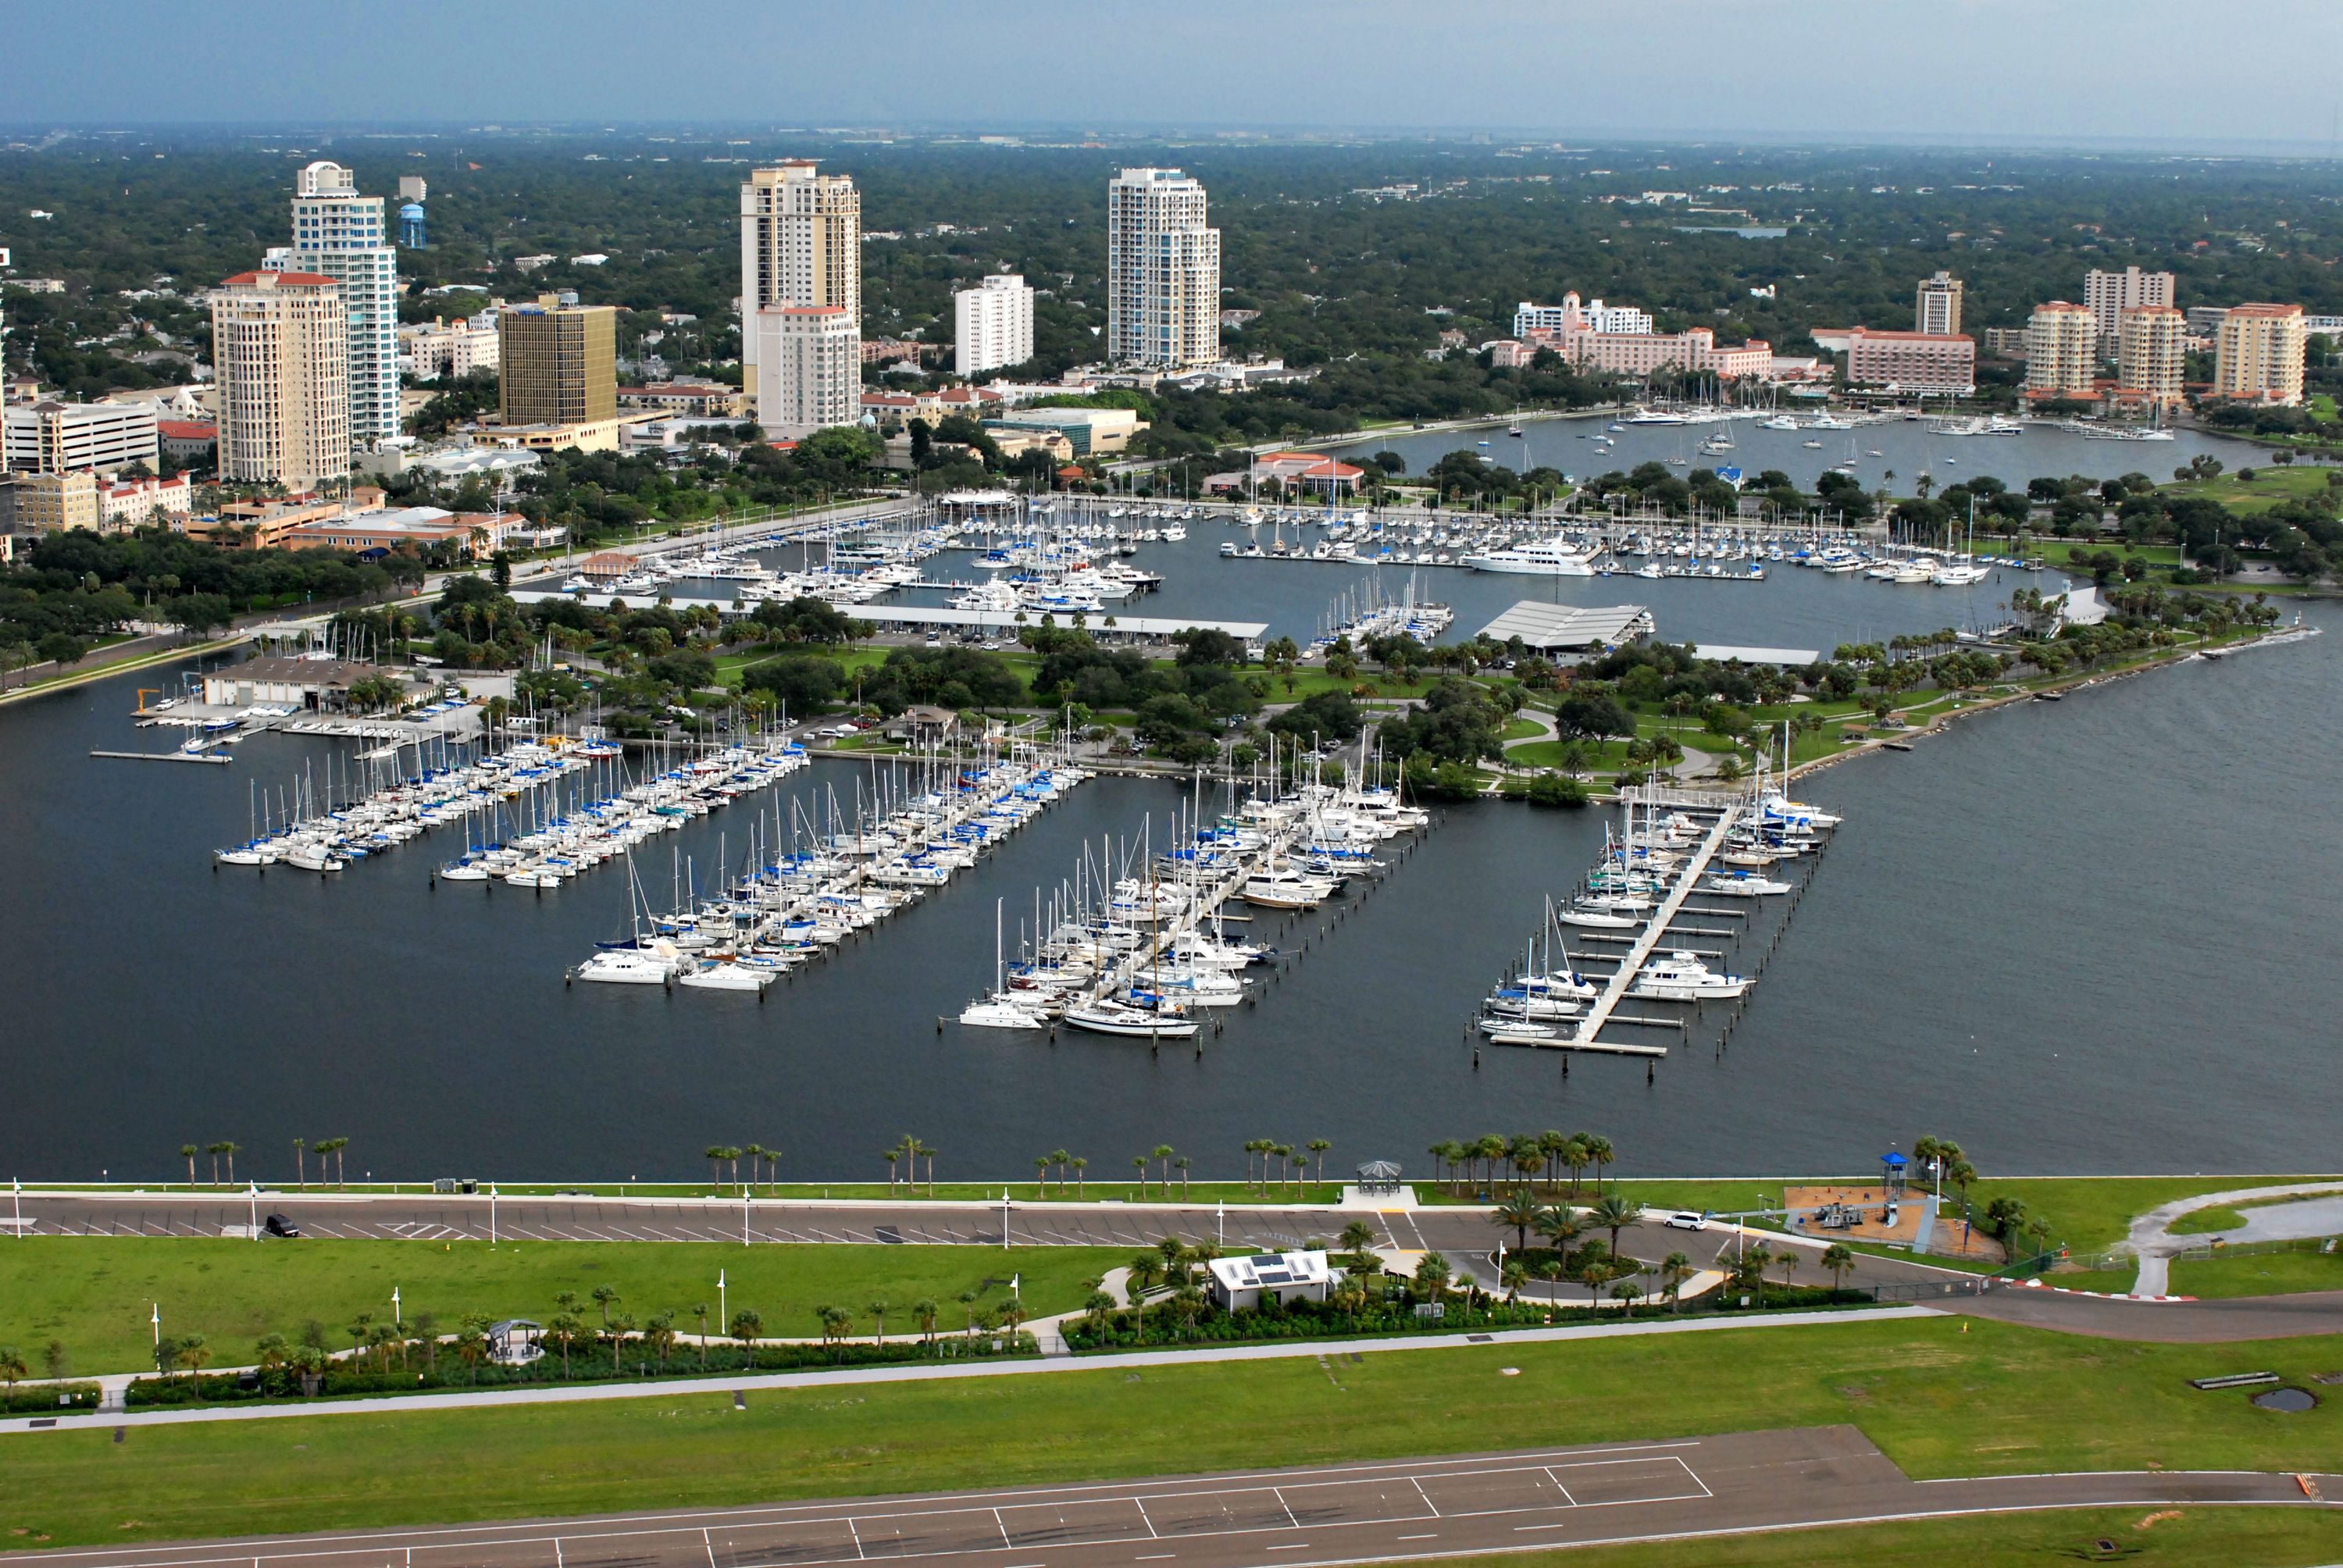 City of St  Petersburg Municipal Marina in St Petersburg, FL, United